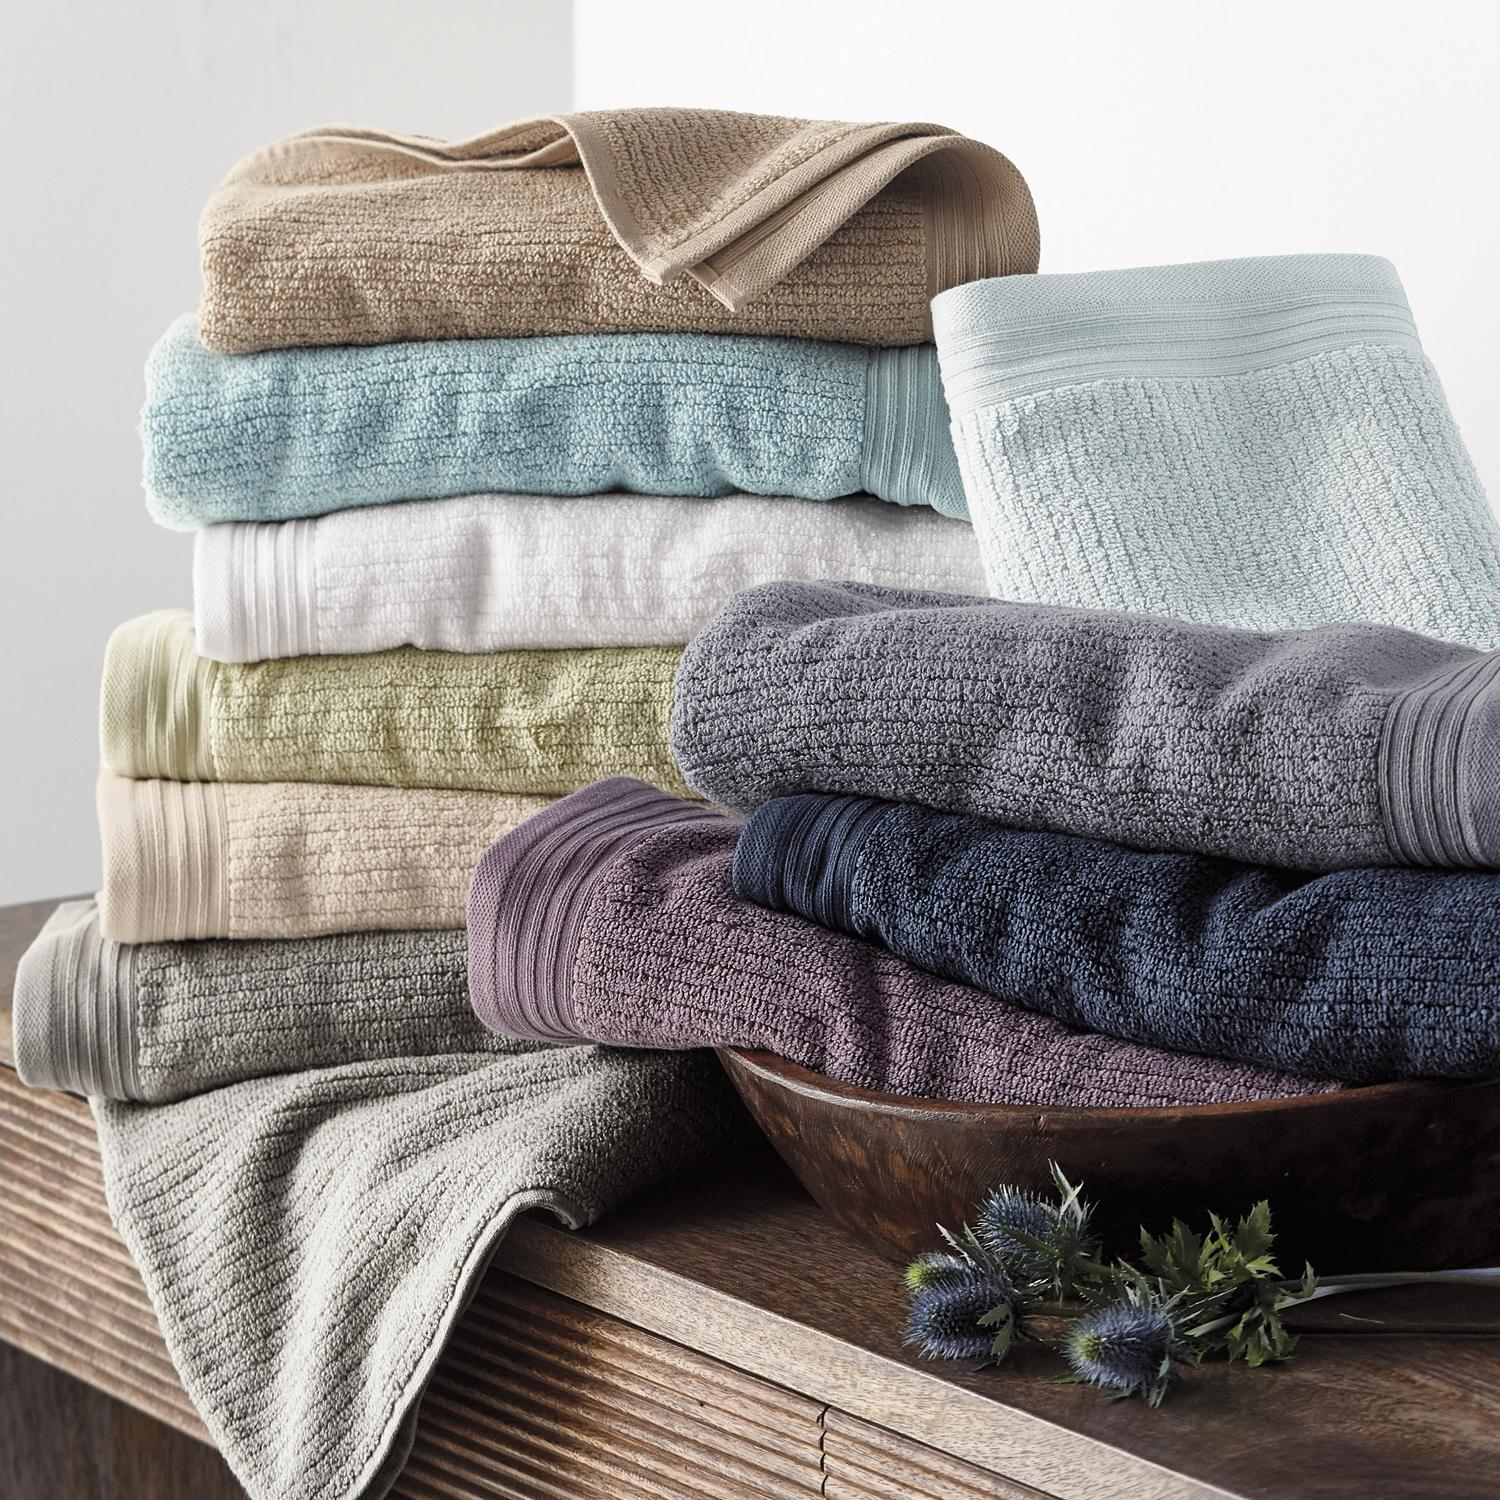 Green Earth%AE Quick-Dry Beach Towels